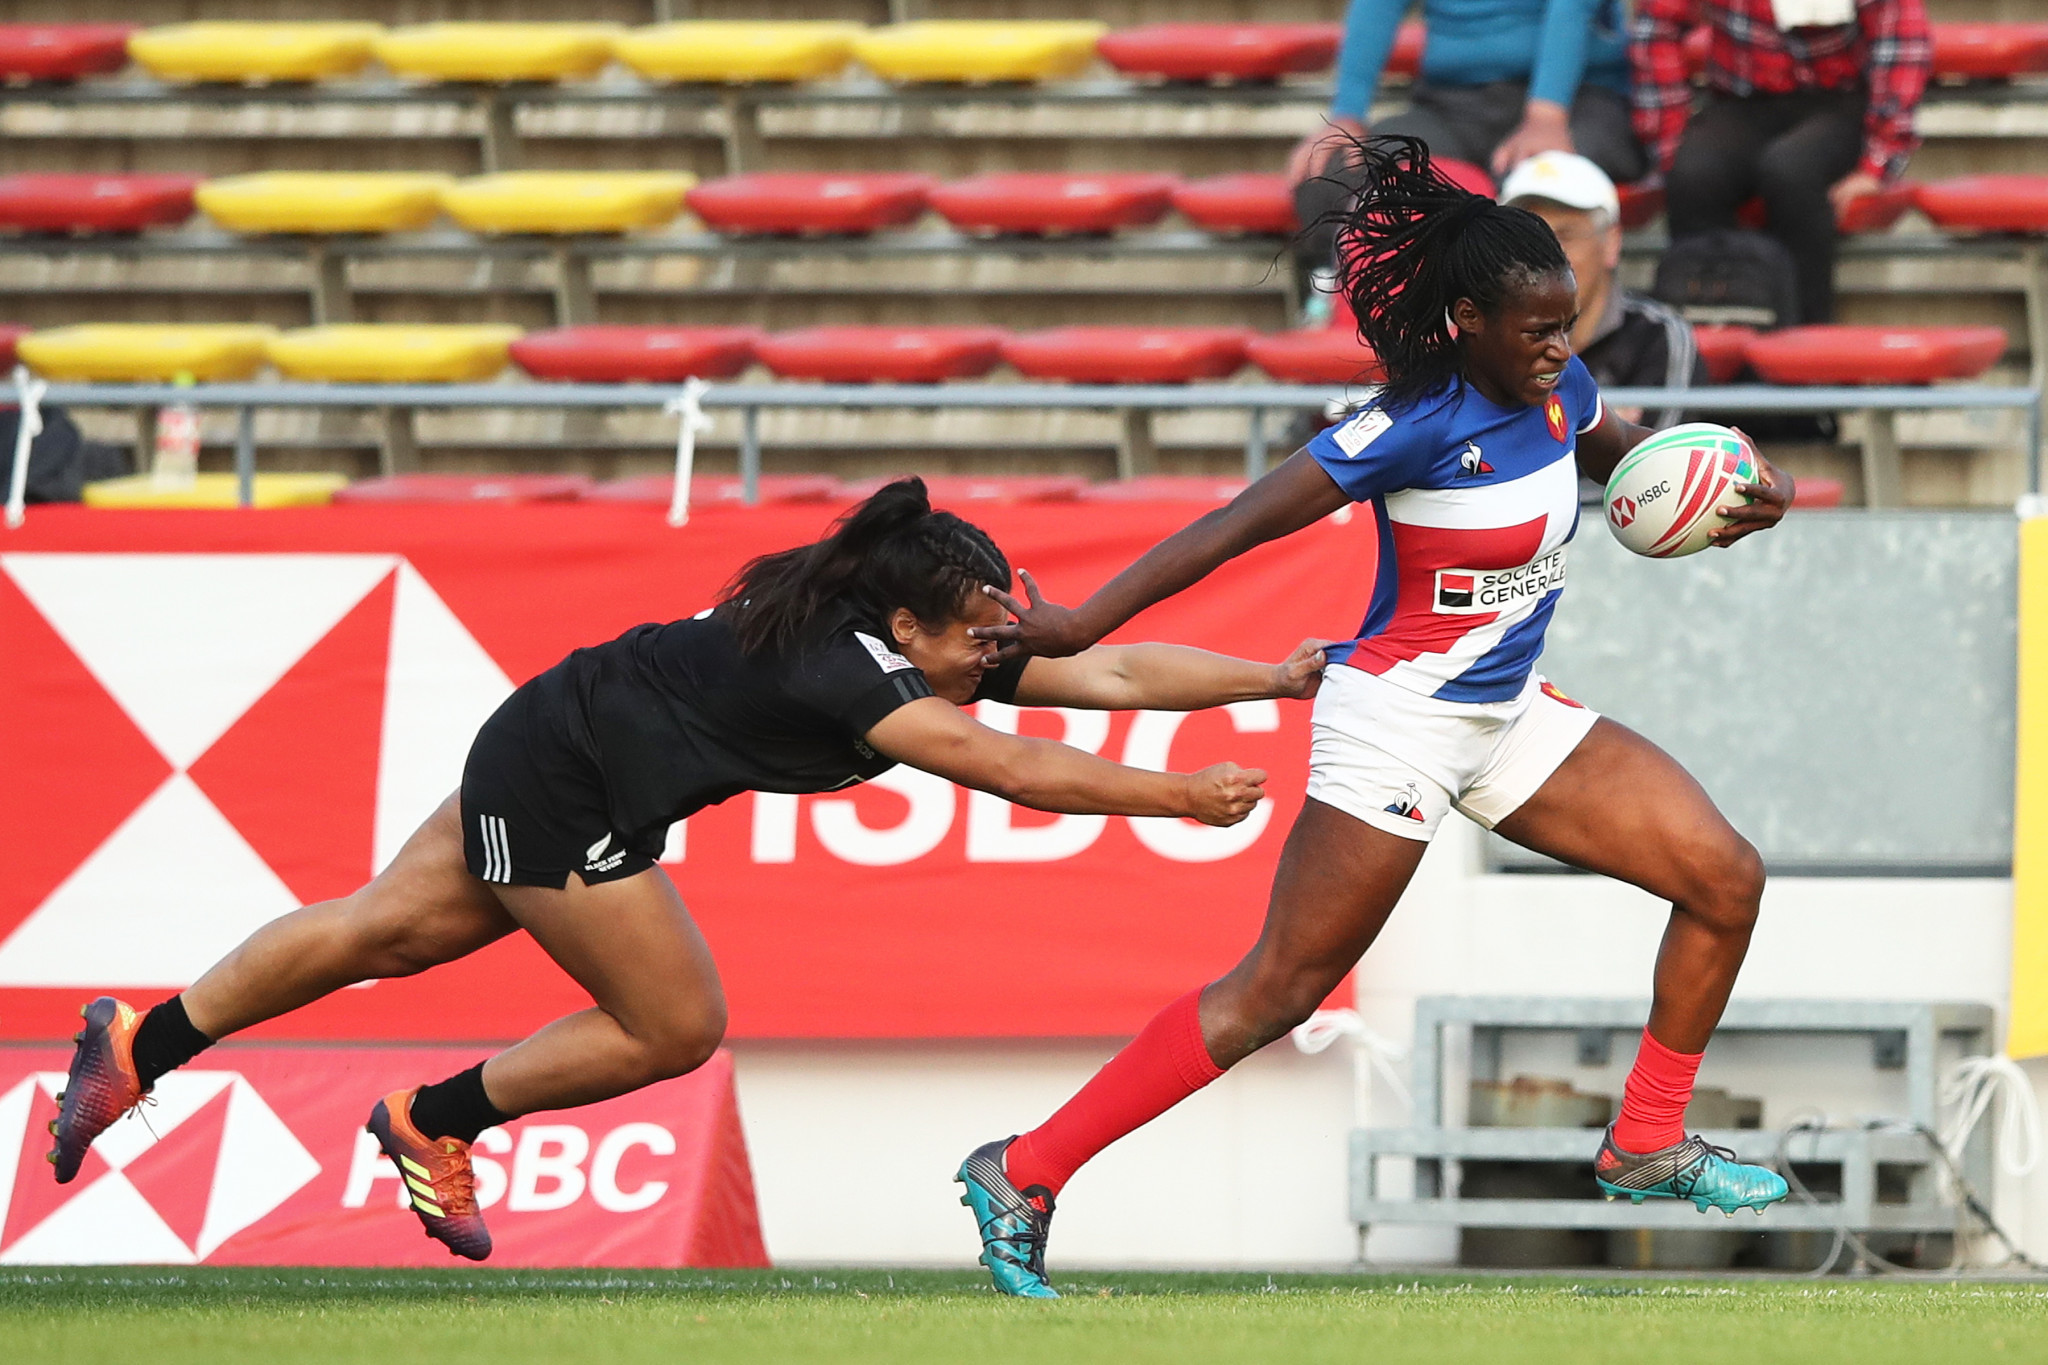 France defeated New Zealand at the World Rugby Seven Series in Kitakyushu ©World Rugby